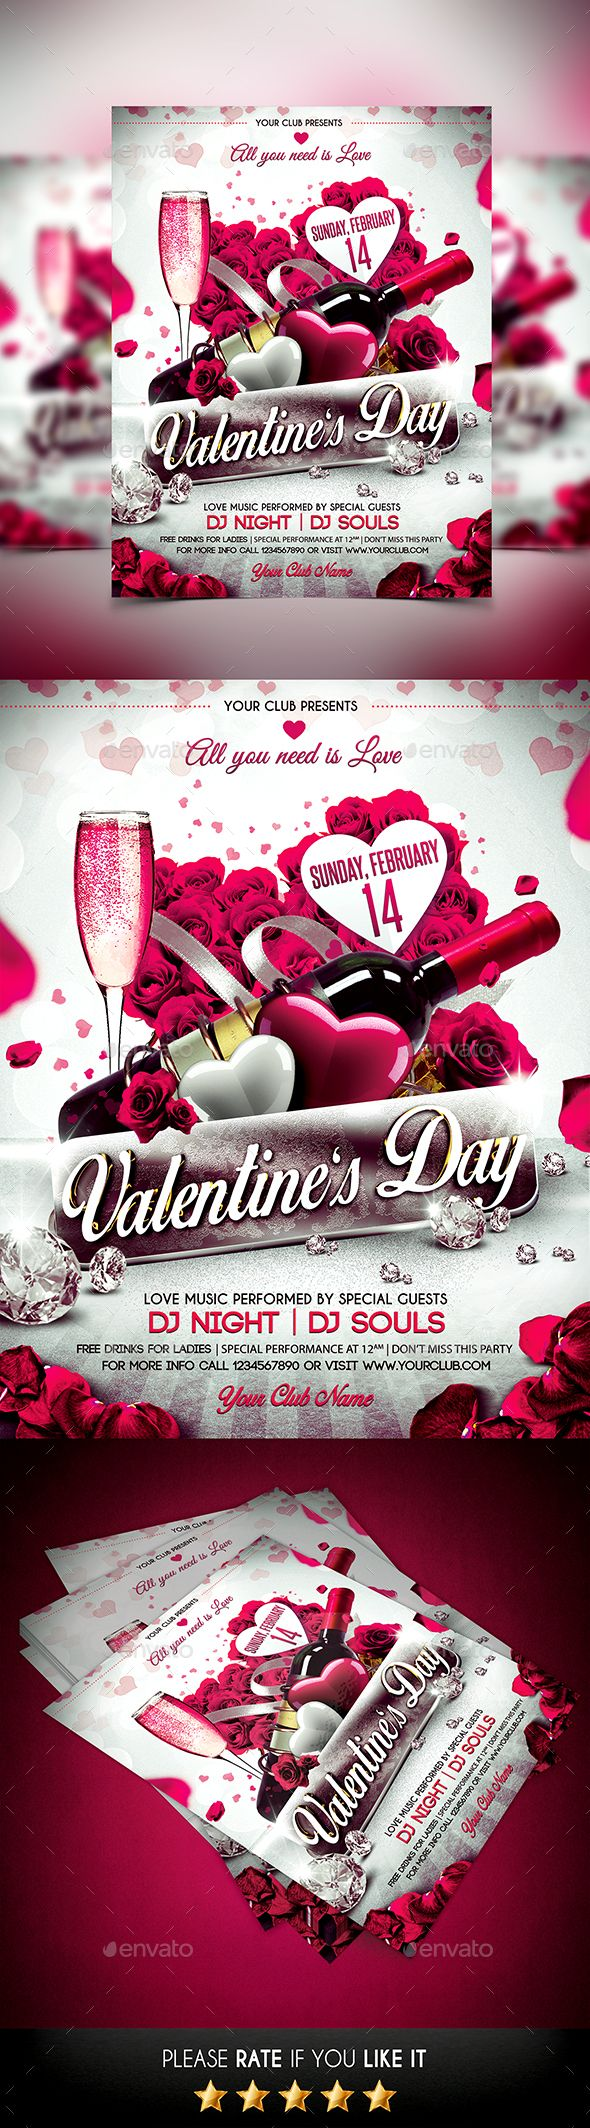 Valentines Day Flyer Template PSD #design Download: http://graphicriver.net/item/valentines-day-flyer/14467943?ref=ksioks